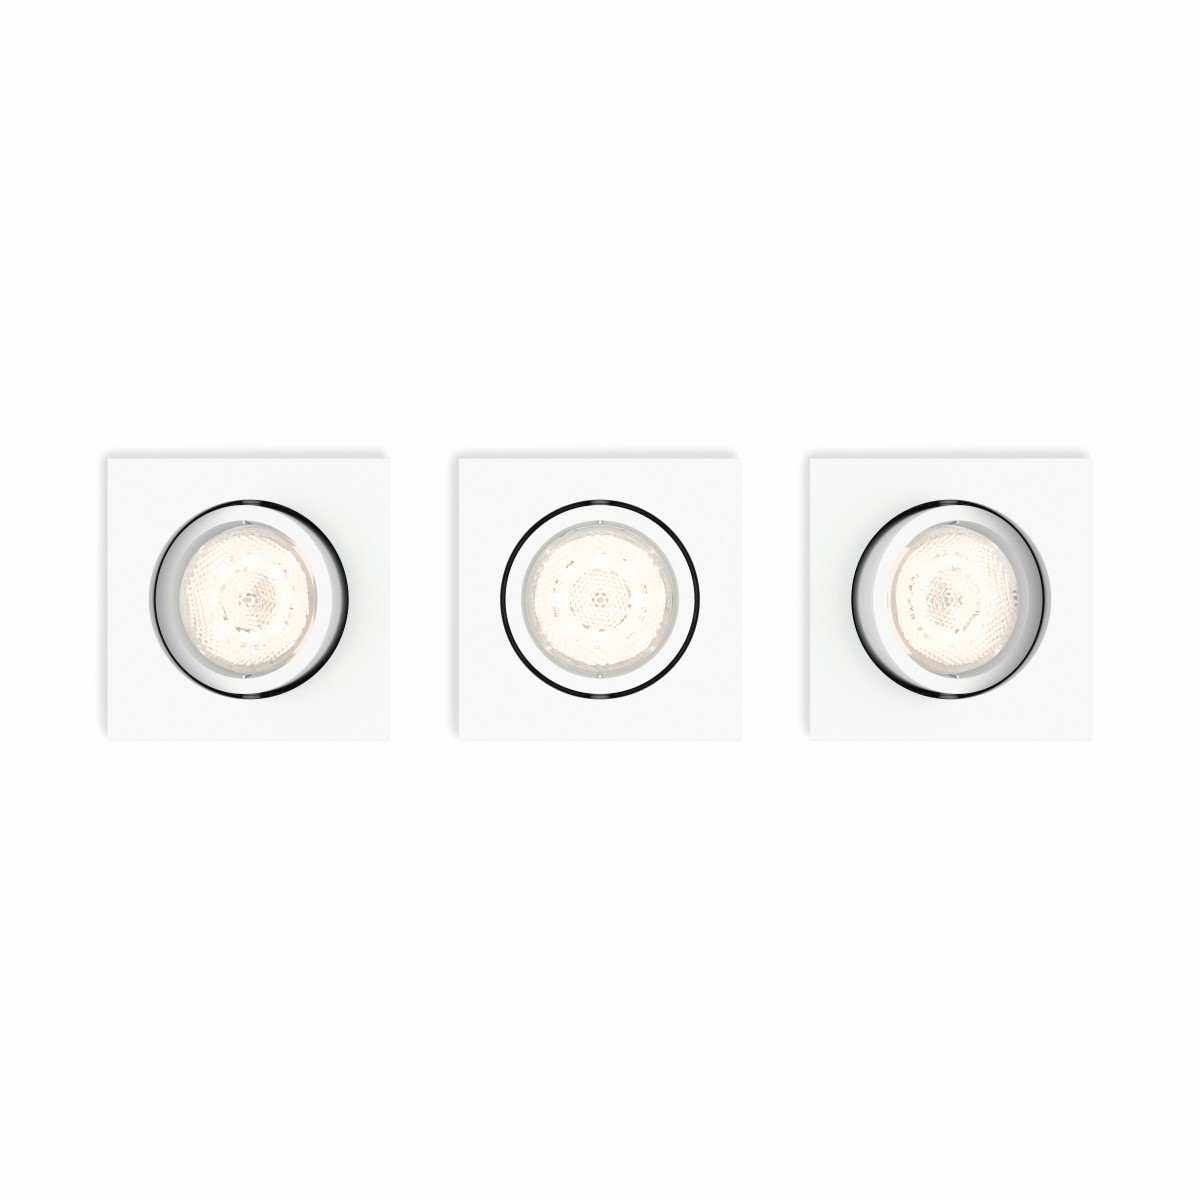 Philips Lighting Shellbark 5039331P0 LED-inbouwlamp Set van 3 13.5 W Warm-wit Wit